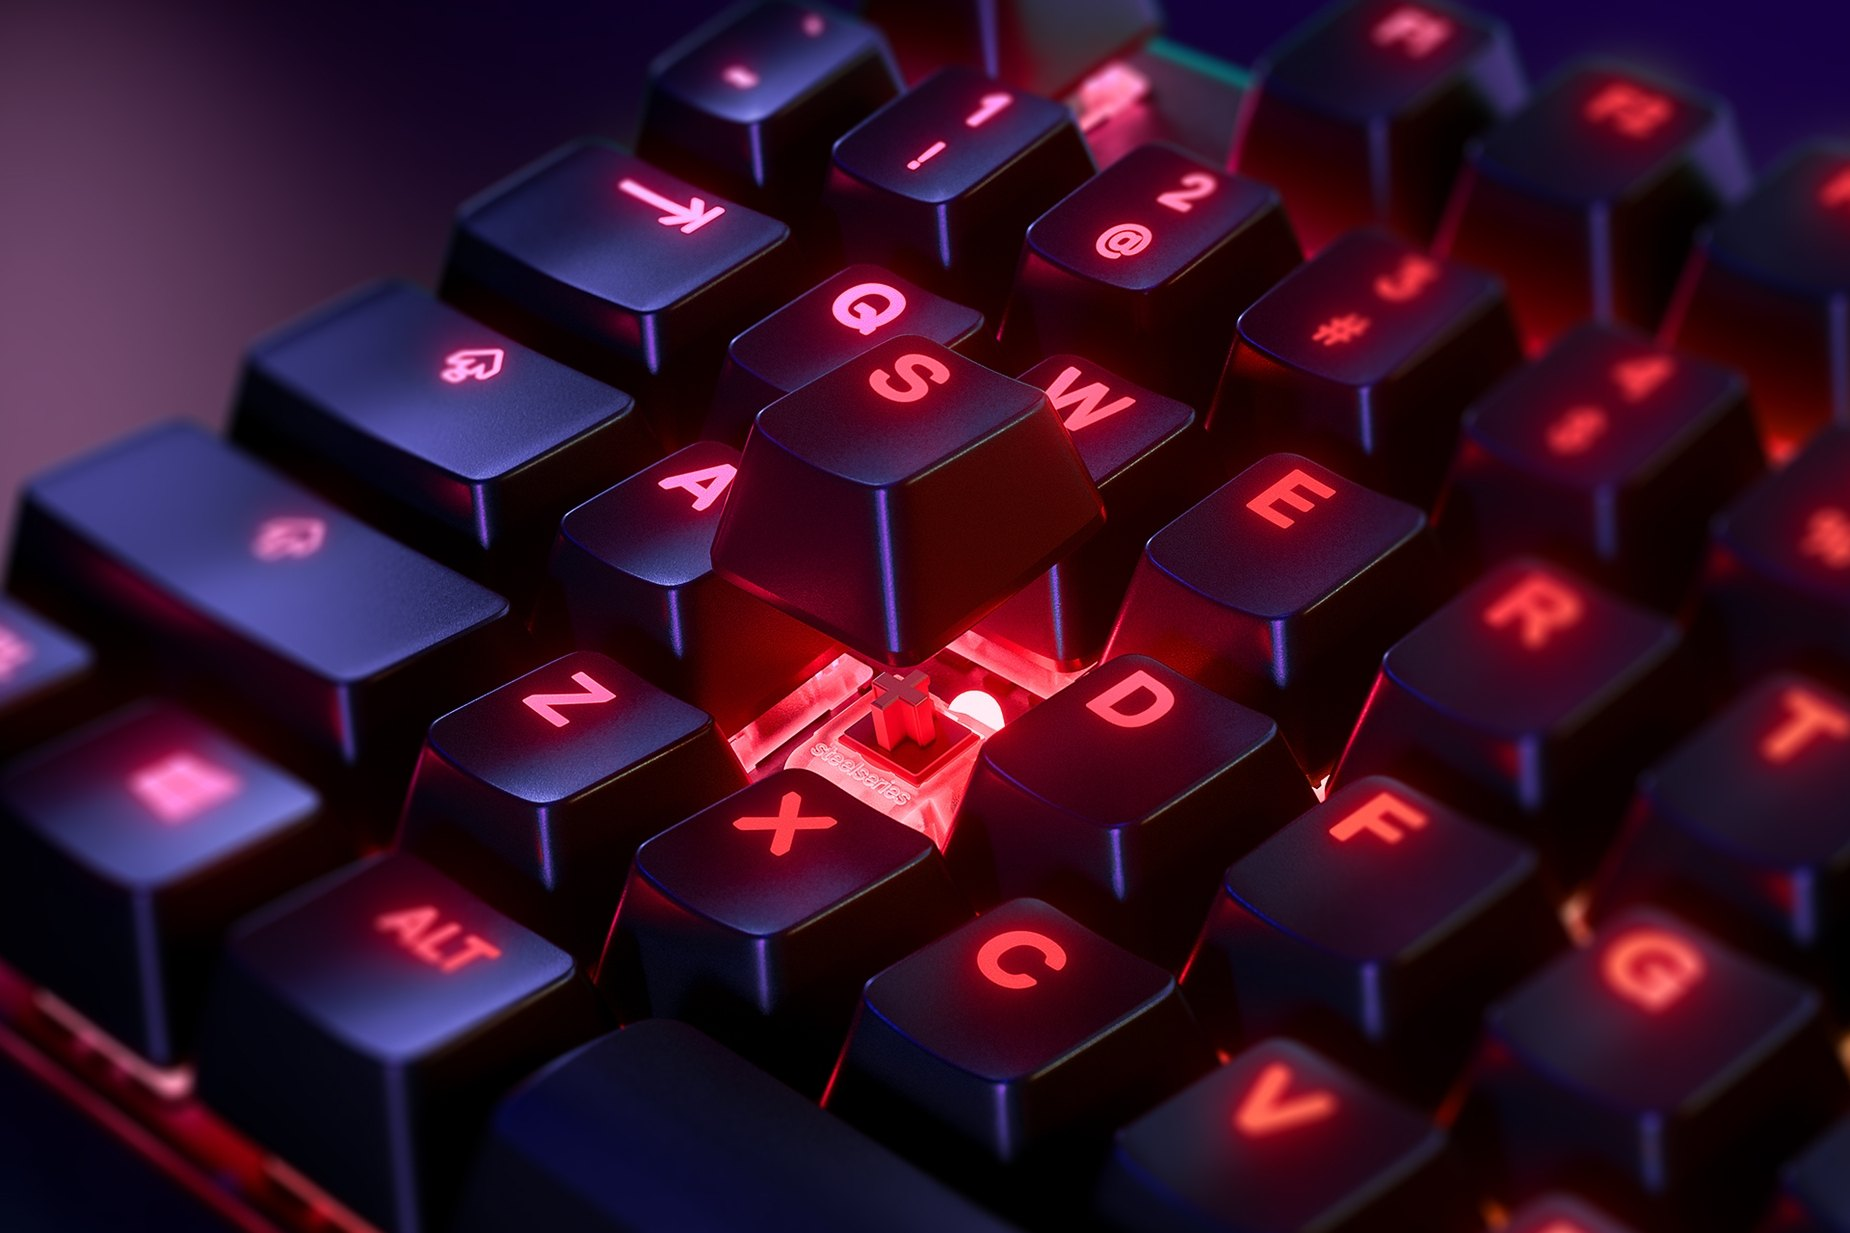 Zoomed in view of a single key on the Korean - Apex 7 TKL (Red Switch) gaming keyboard, the key is raised up to show the SteelSeries QX2 Mechanical RGB Switch underneath